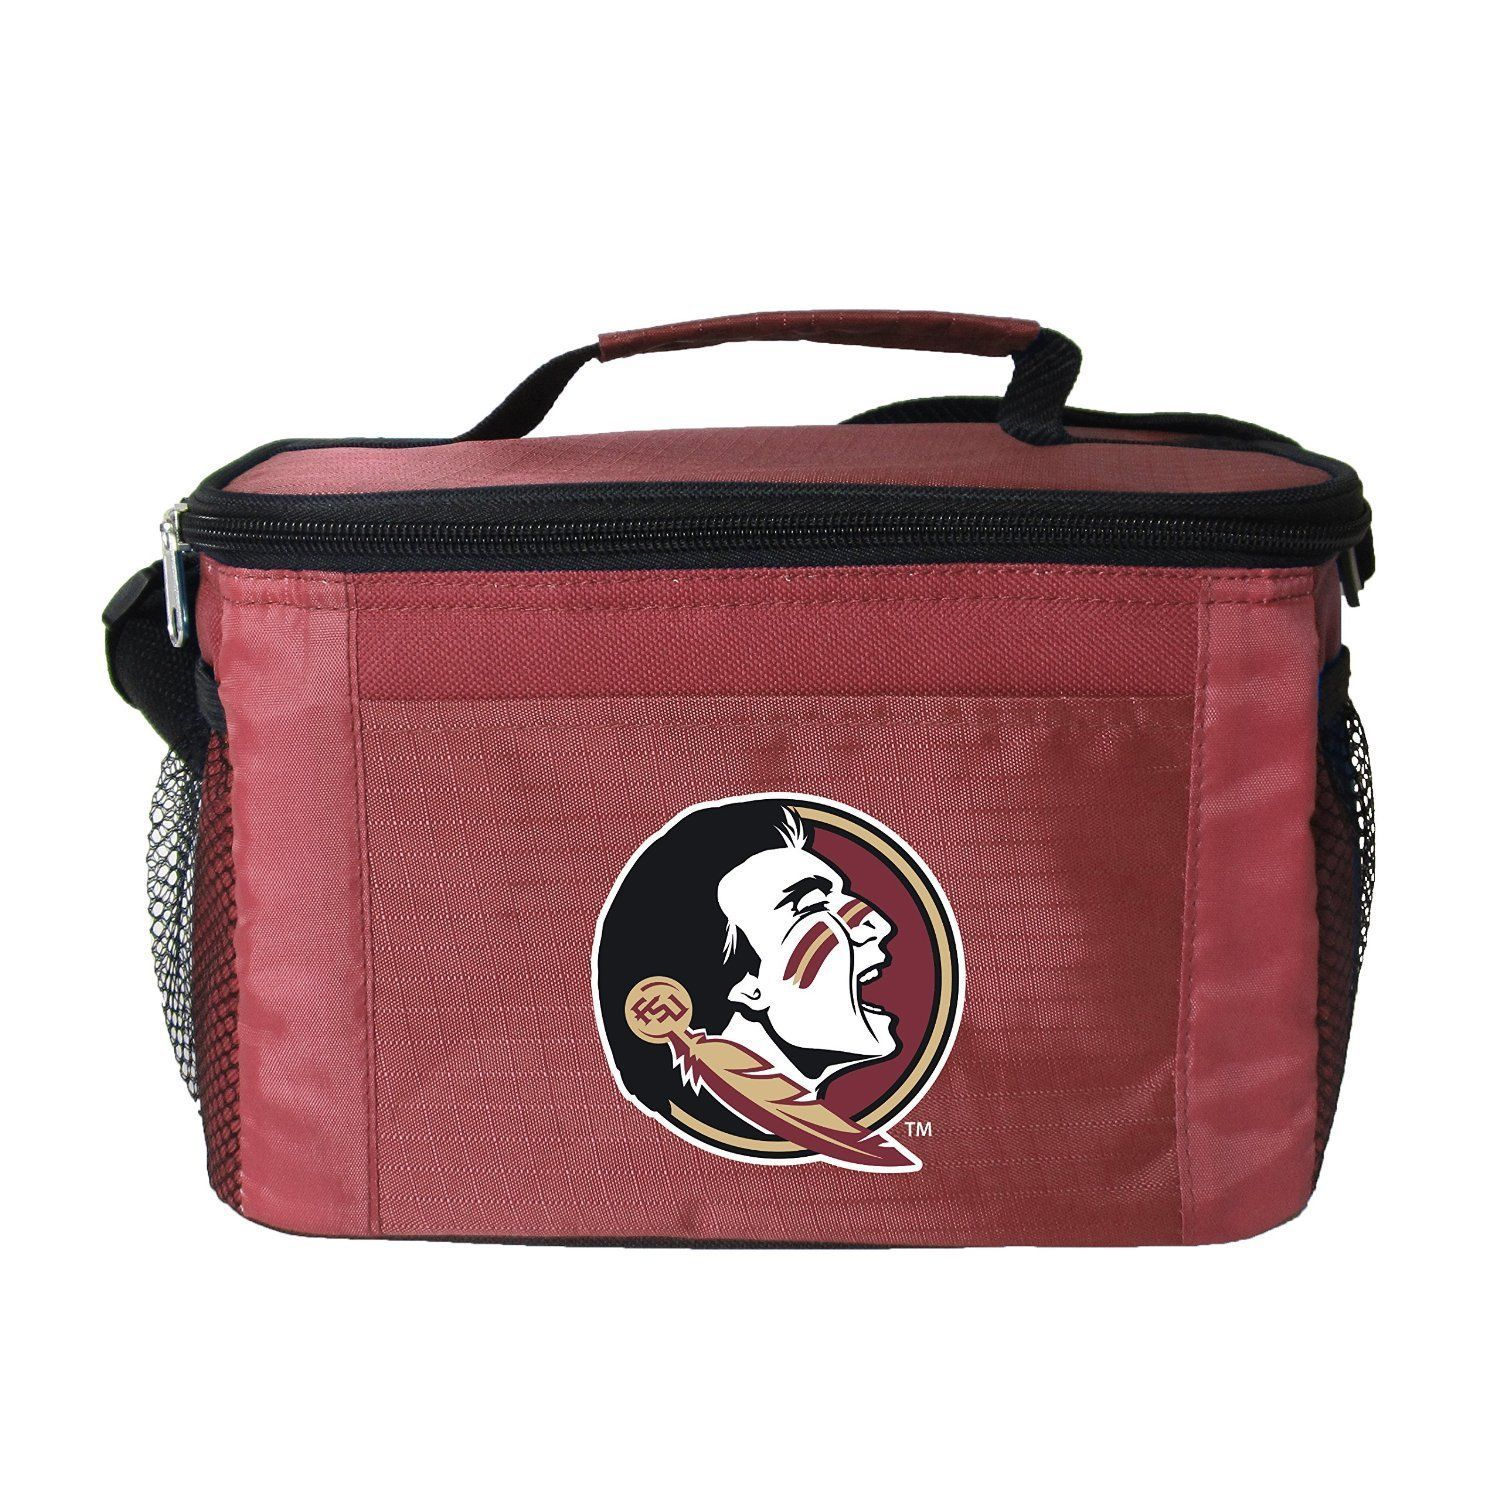 FLORIDA STATE SEMINOLES LUNCH TOTE 6 PK BEER SODA TEAM LOGO KOOLER BAG NCAA